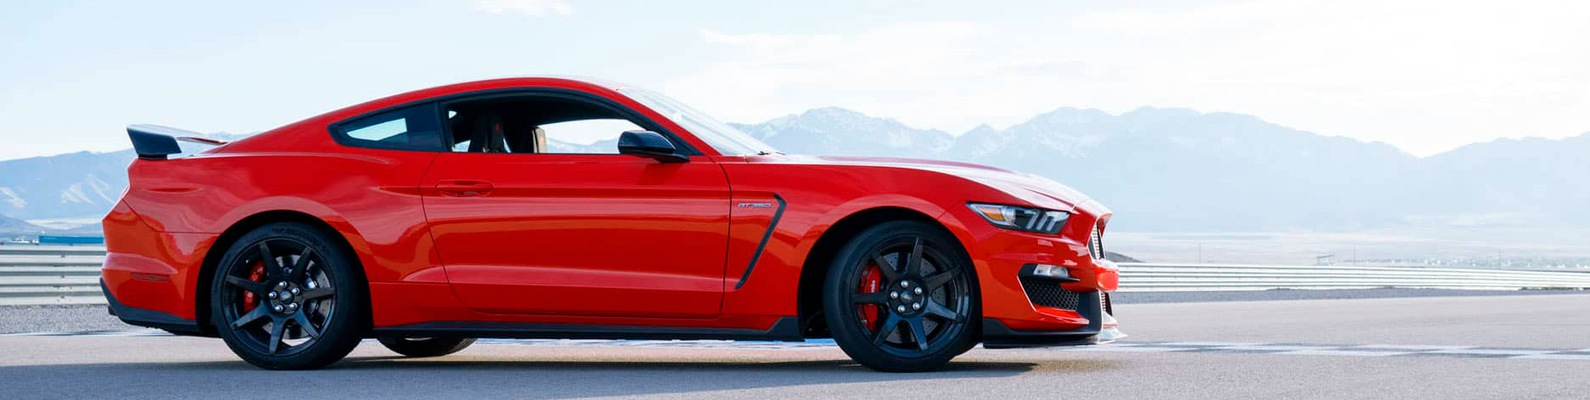 marketing mix of ford mustang The marketing strategy of ford motor - free download as word doc (doc), pdf file (pdf), text file (txt) or read online for free assembling the marketing mix.